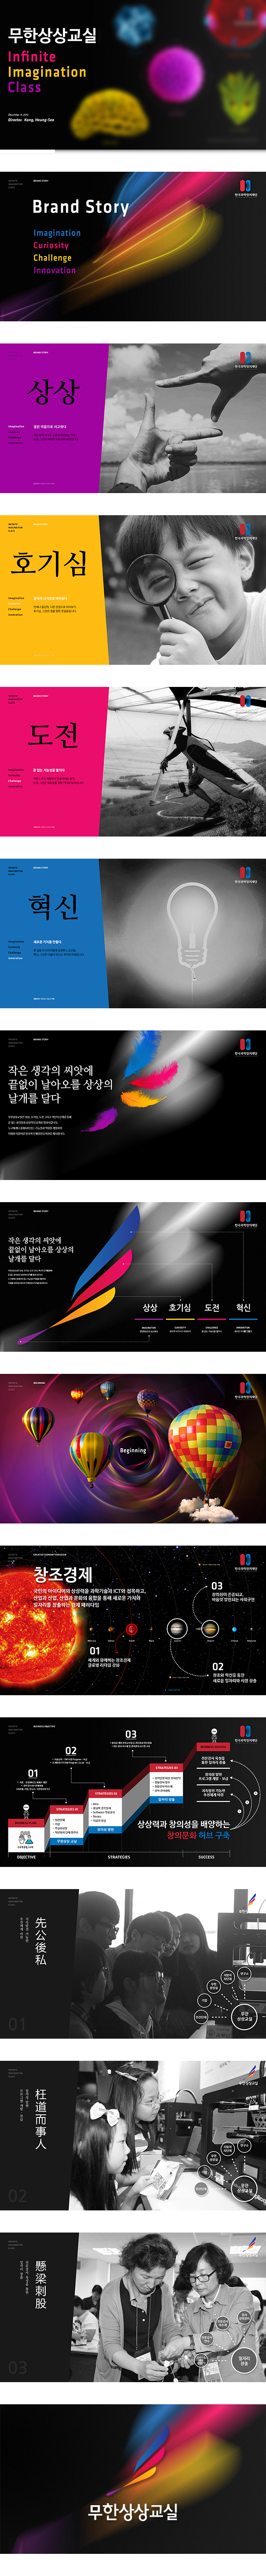 Infinite Imagination Class by young sun hong, via Behance